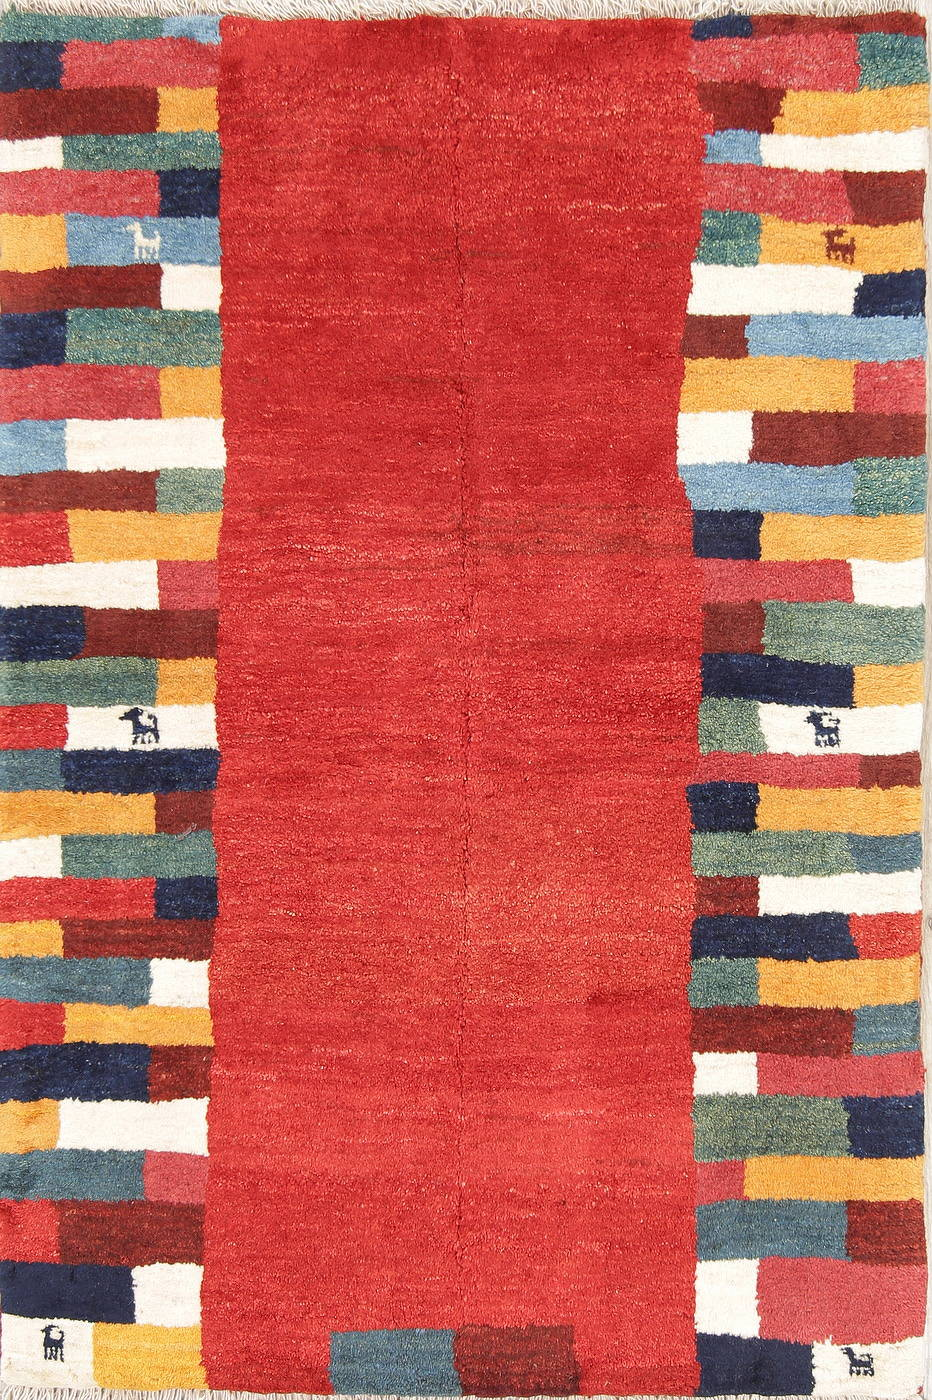 Hand-Knotted Red Contemporary Gabbeh Shiraz Persian Wool Rug 3x5